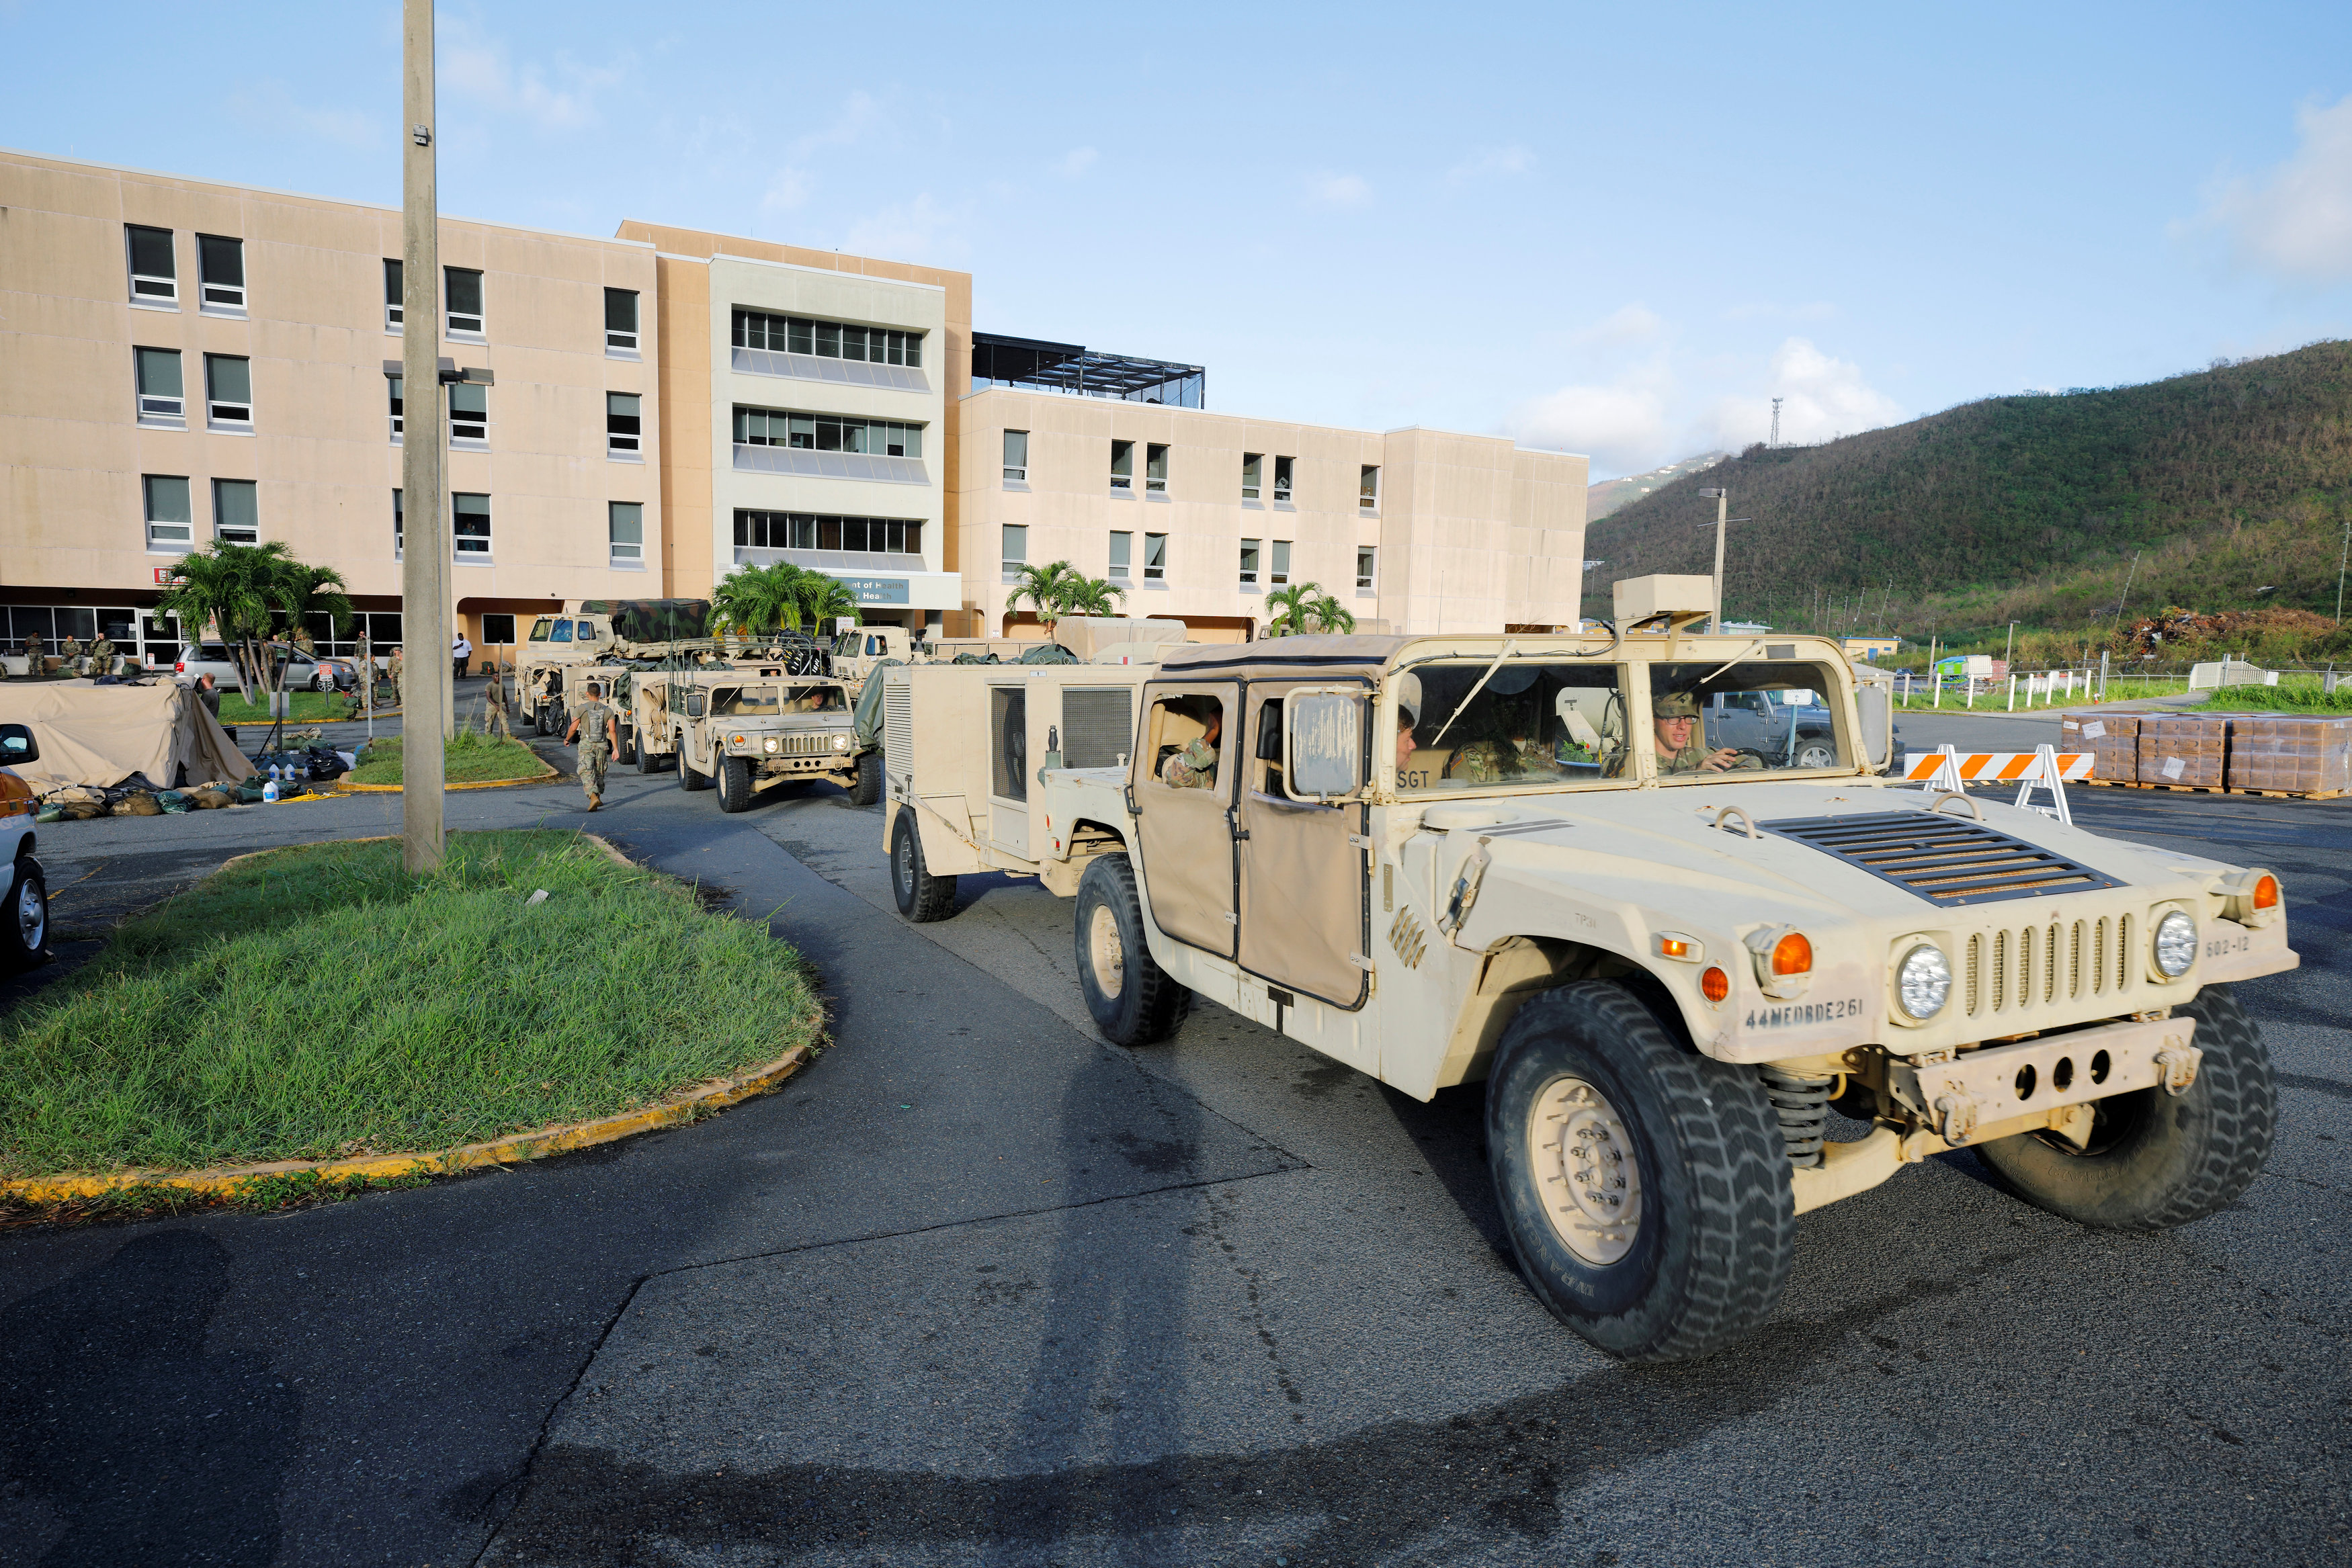 Soldiers from the 602nd Area Support Medical Company evacuate their unit from Schneider Regional Medical Center in advance of Hurricane Maria, in Charlotte Amalie, St. Thomas, U.S. Virgin Islands on Sept. 17, 2017. (REUTERS/Jonathan Drake)